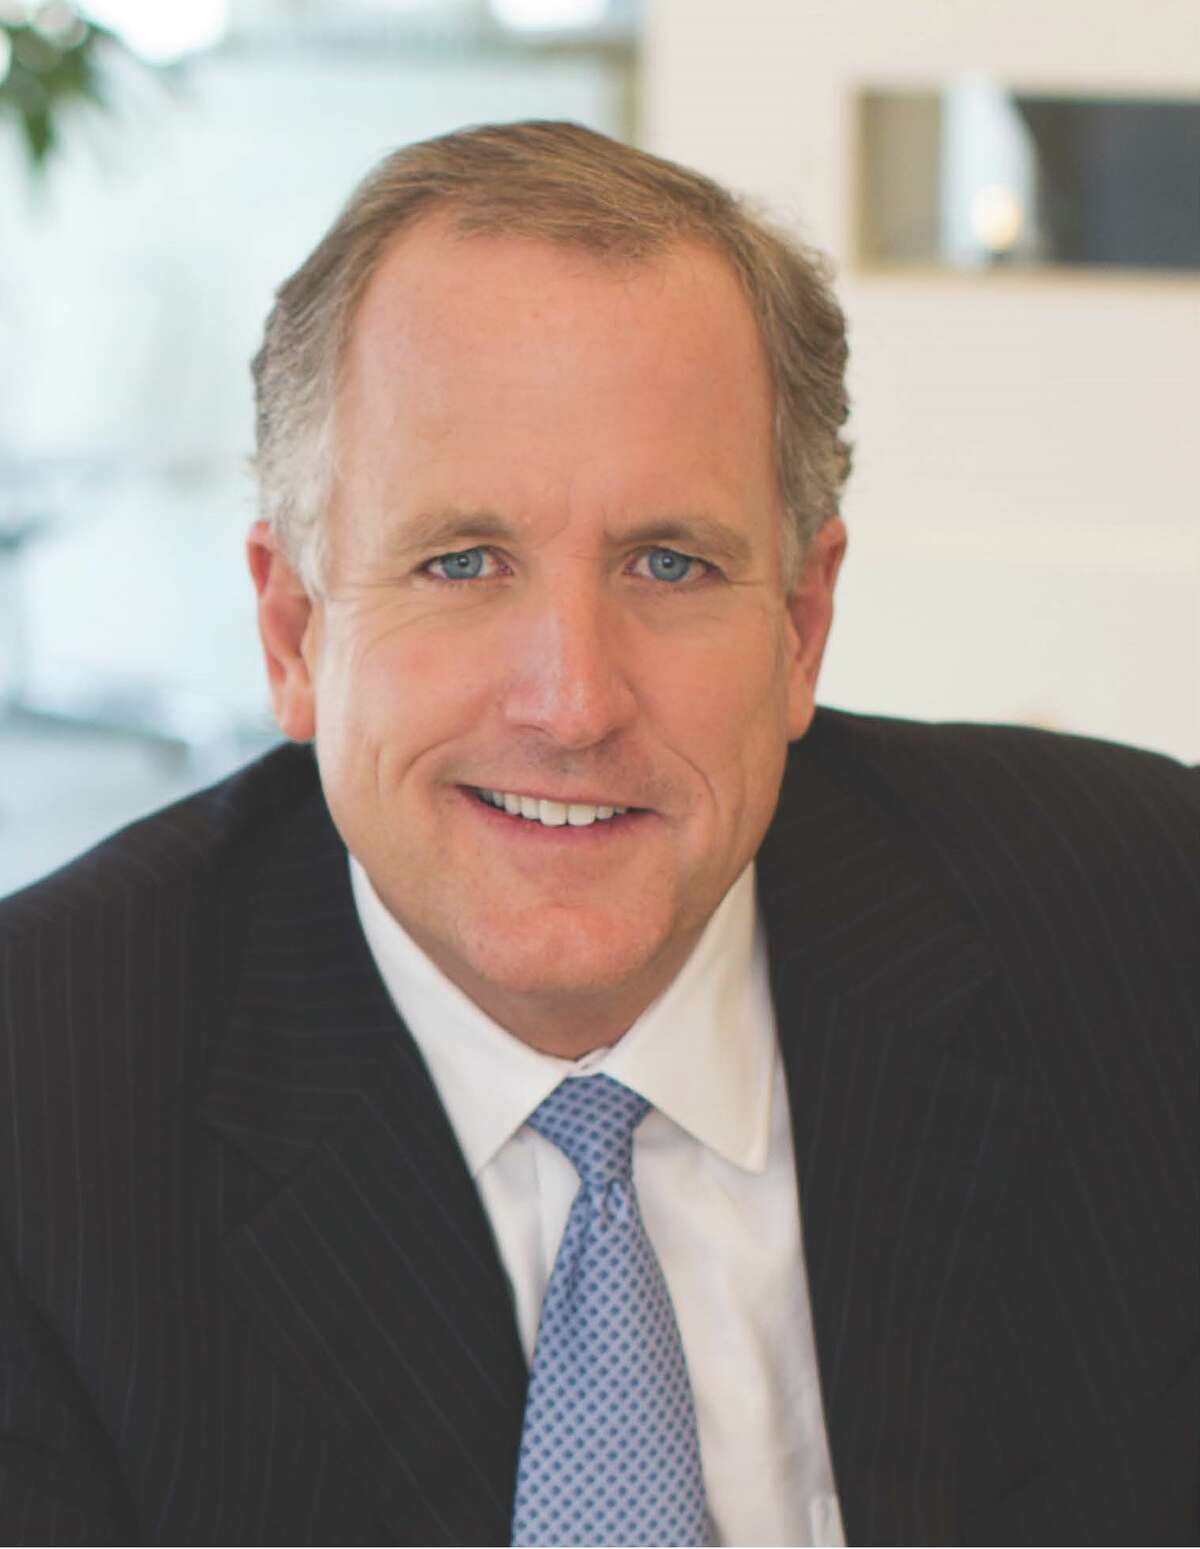 Chip Colvill, president/CEO, Colvill Office Properties, joins Cushman & Wakefield as executive vice chairman.